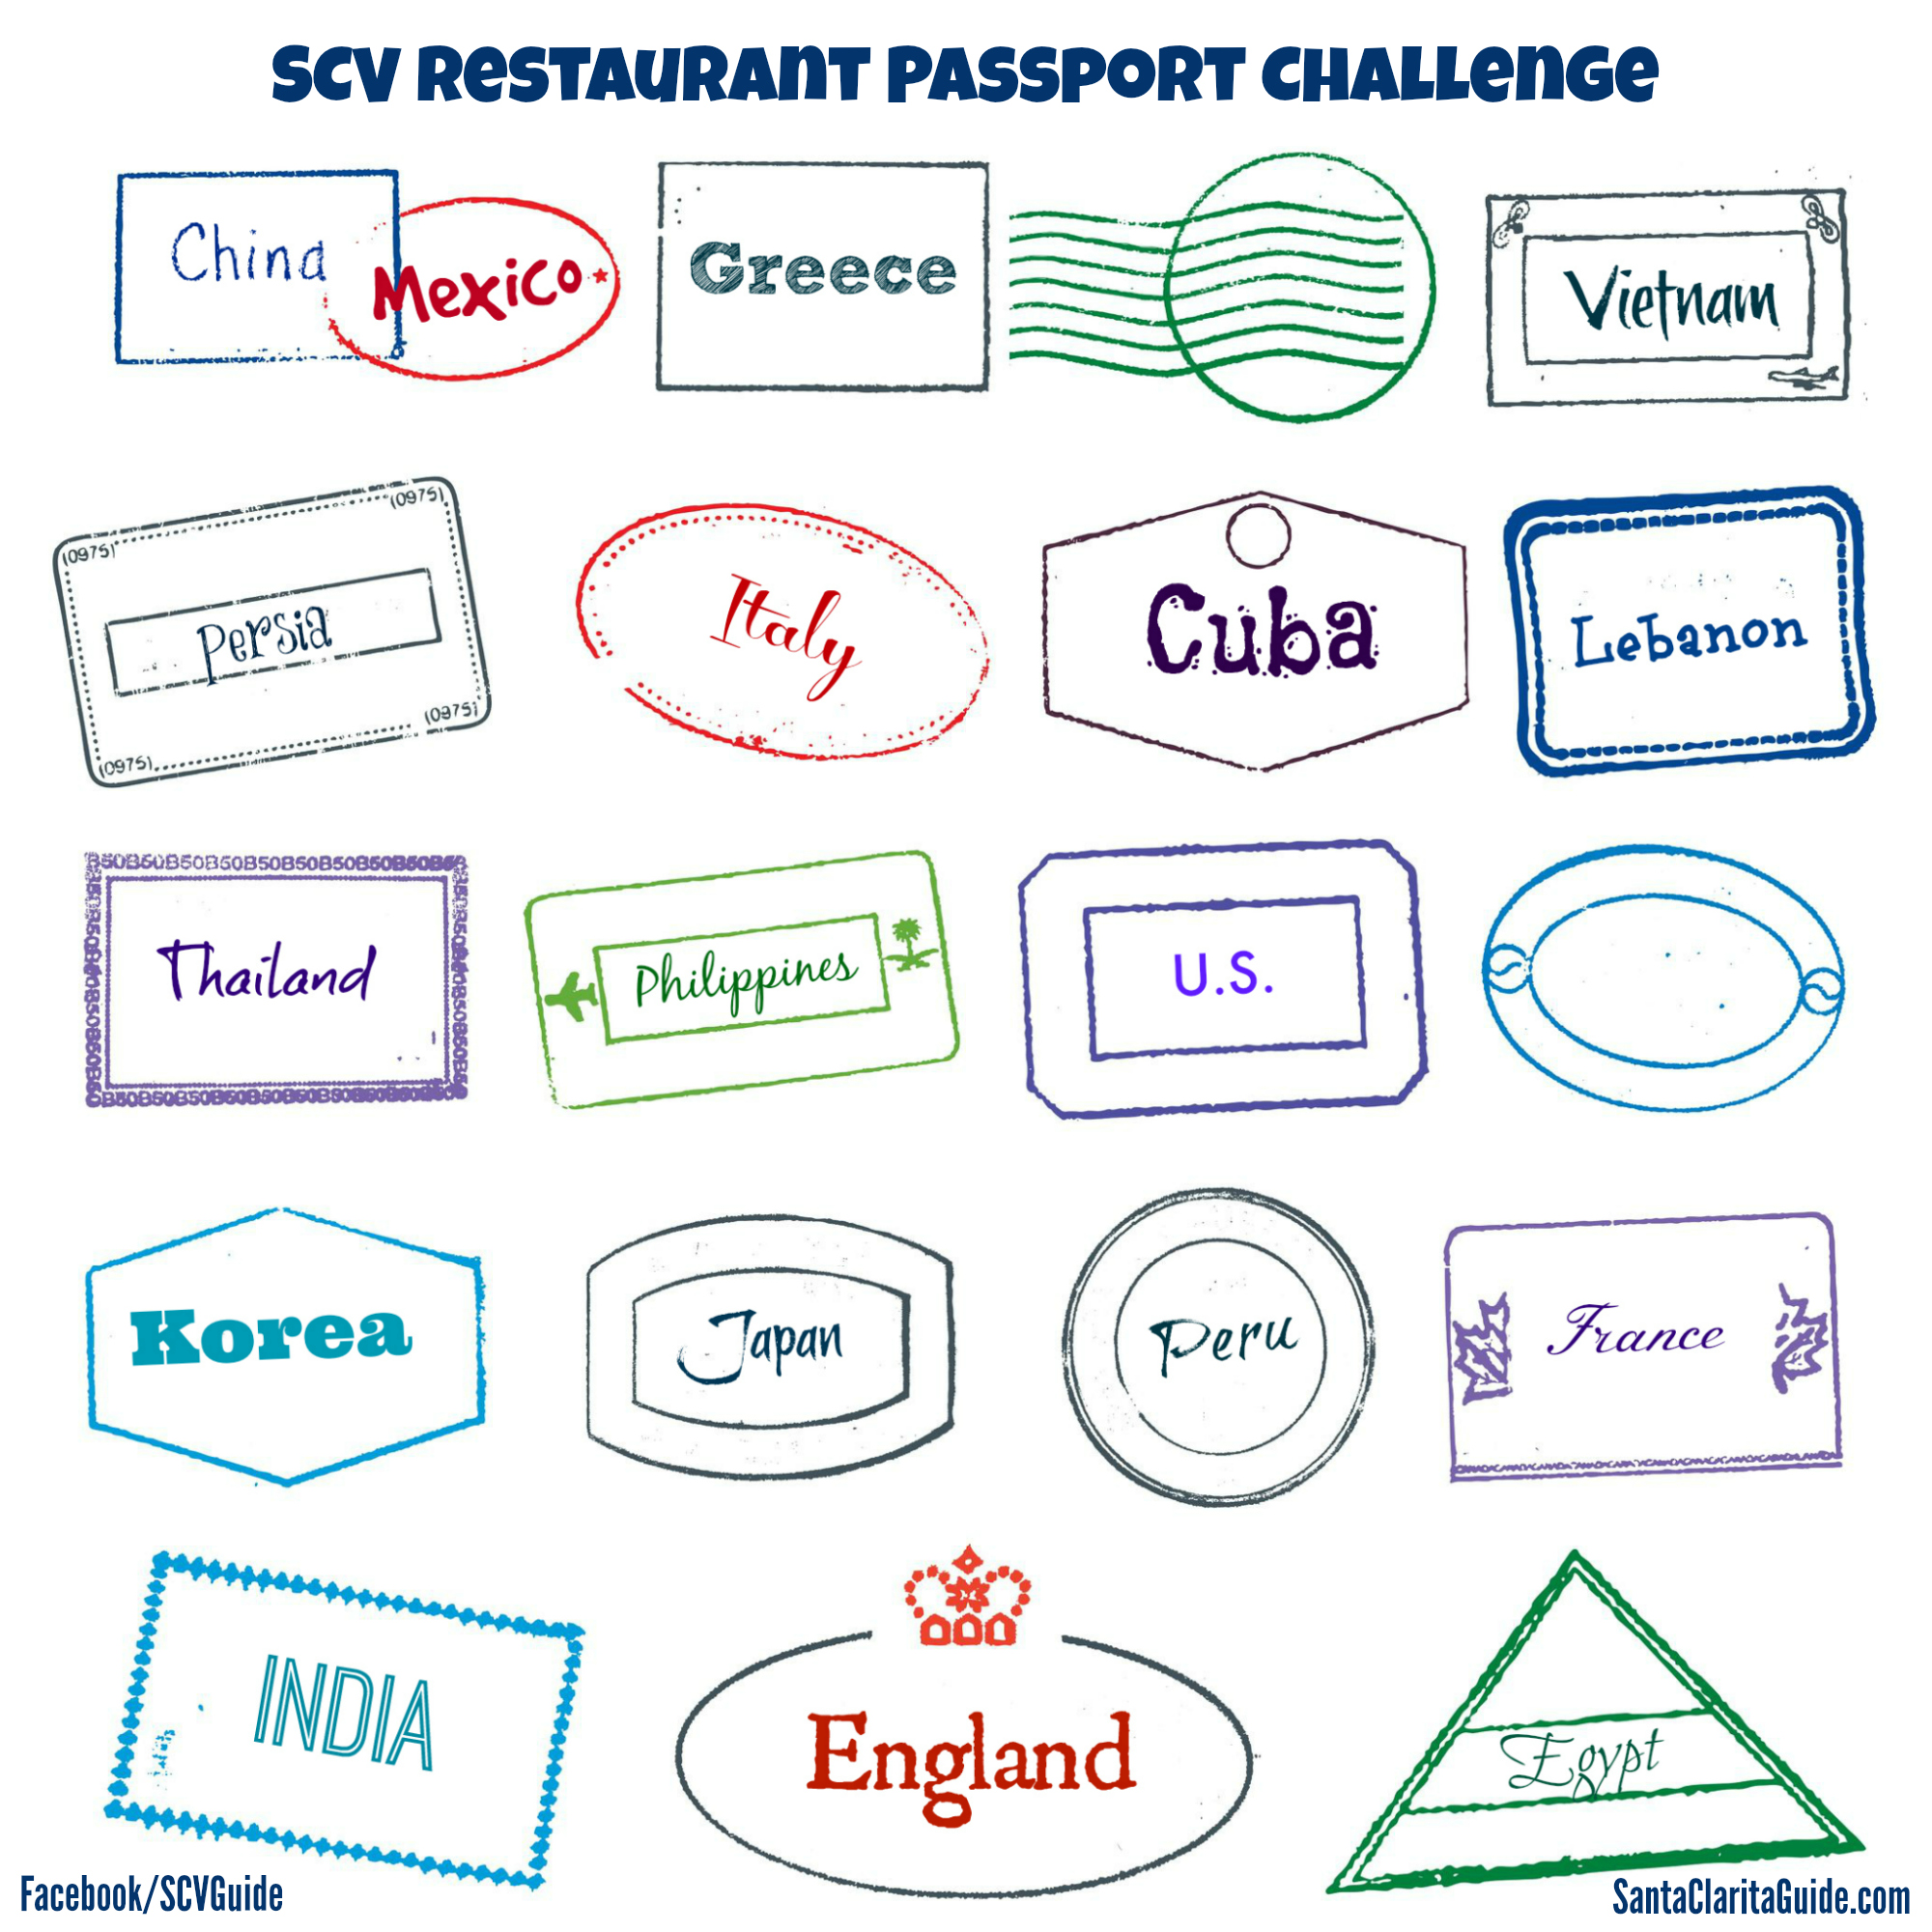 SCV Restaurant Passport